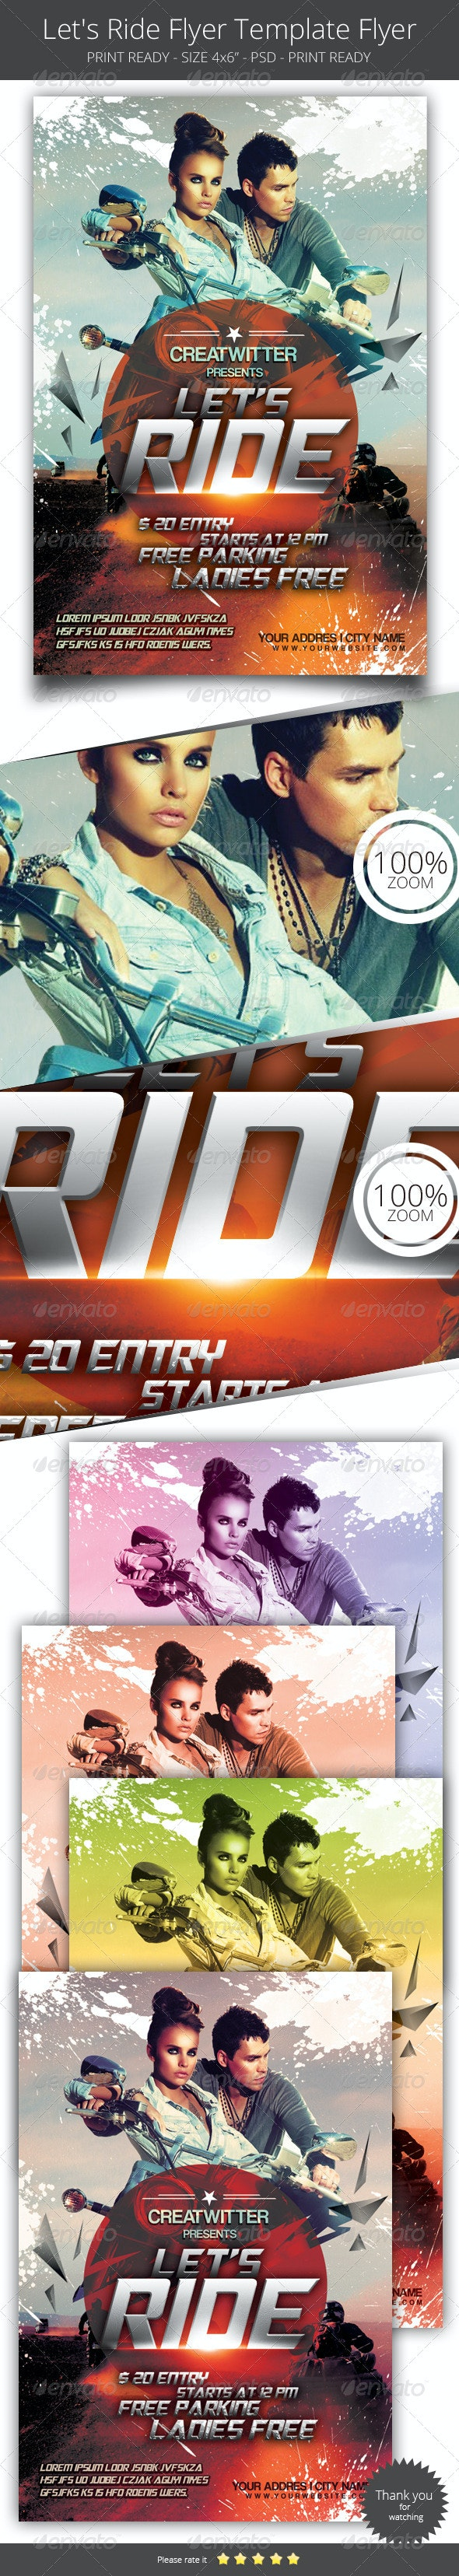 Let's Ride Flyer Template - Clubs & Parties Events